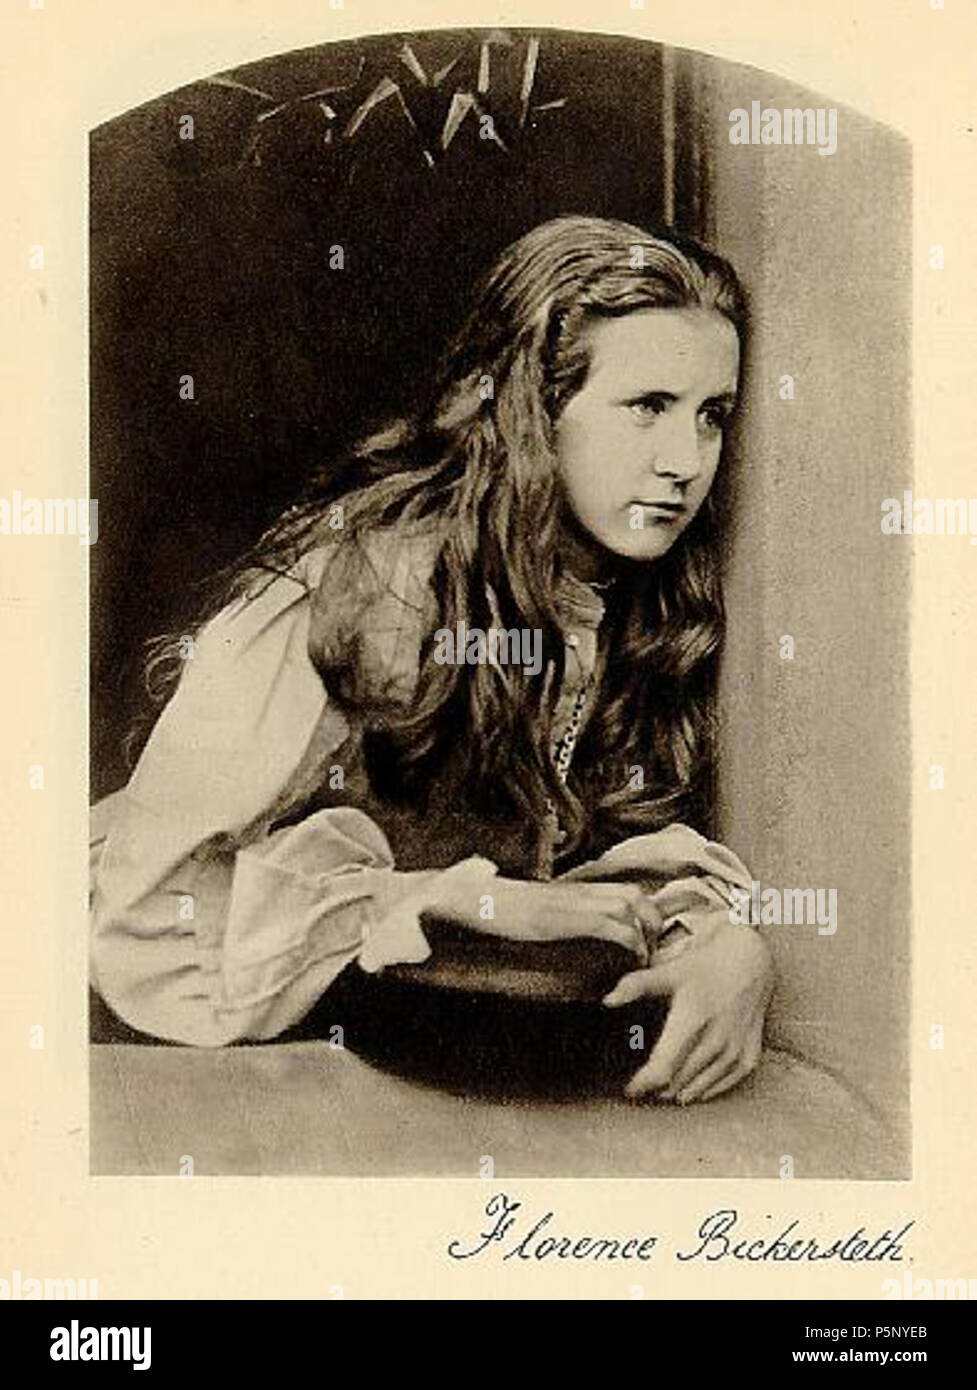 N/A. Florence Bickersteth, daughter of the Bishop of Ripon: this was published in either:[1] Lewis Carroll with a text by Graham Ovenden (Masters of photography series). London: McDonald & Queen Anne. 1984, or Lewis Carroll, Photographer by Helmut Gernsheim. London: Max Parrish & Co. 1949. . 7 September 1865.   Lewis Carroll (1832–1898)   Alternative names Charles Lutwidge Dodgson  Description British-English writer, mathematician and photographer  Date of birth/death 27 January 1832 14 January 1898  Location of birth/death Daresbury, Cheshire, England Guildford, Surrey, England  Work p - Stock Image